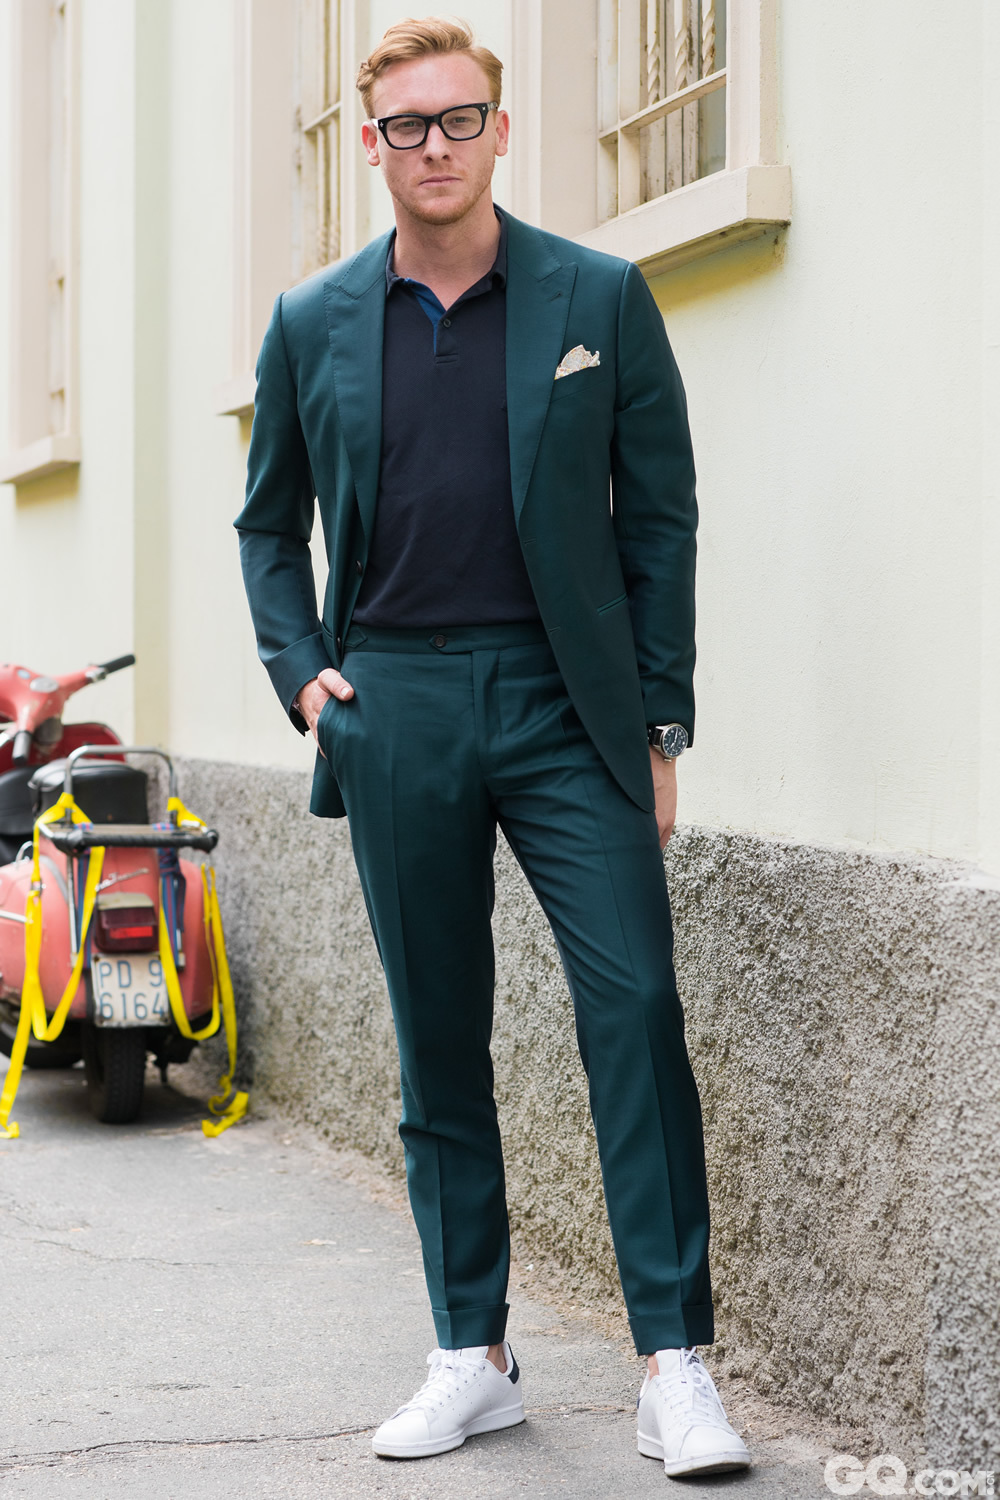 Luc Look: Oscar Hunt Taylors Polo: Sunspel Shoes: Adidas Watch: IWC  Inspiration: I love this green emerald, very bright but also quite dark (我很喜欢这种翡翠绿,既明亮又深沉)